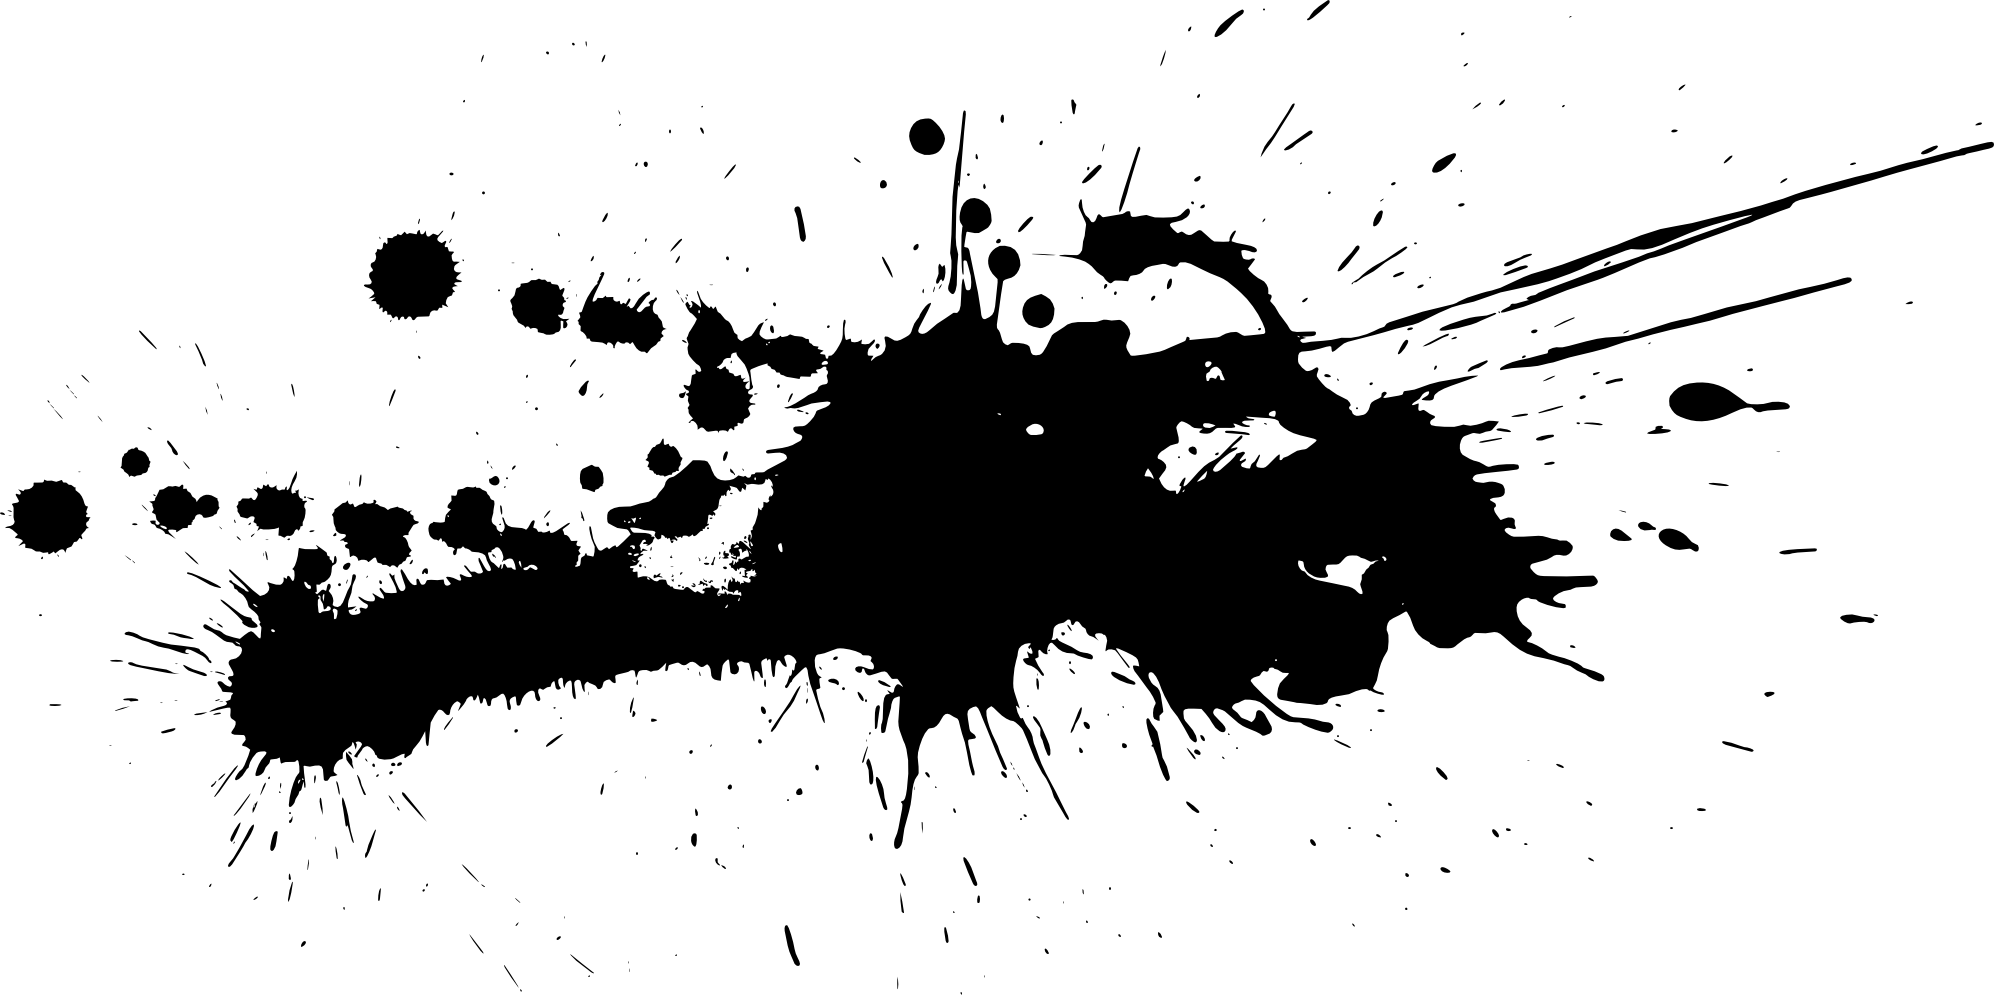 Ink Splatter Png | www.pixshark.com - Images Galleries ...